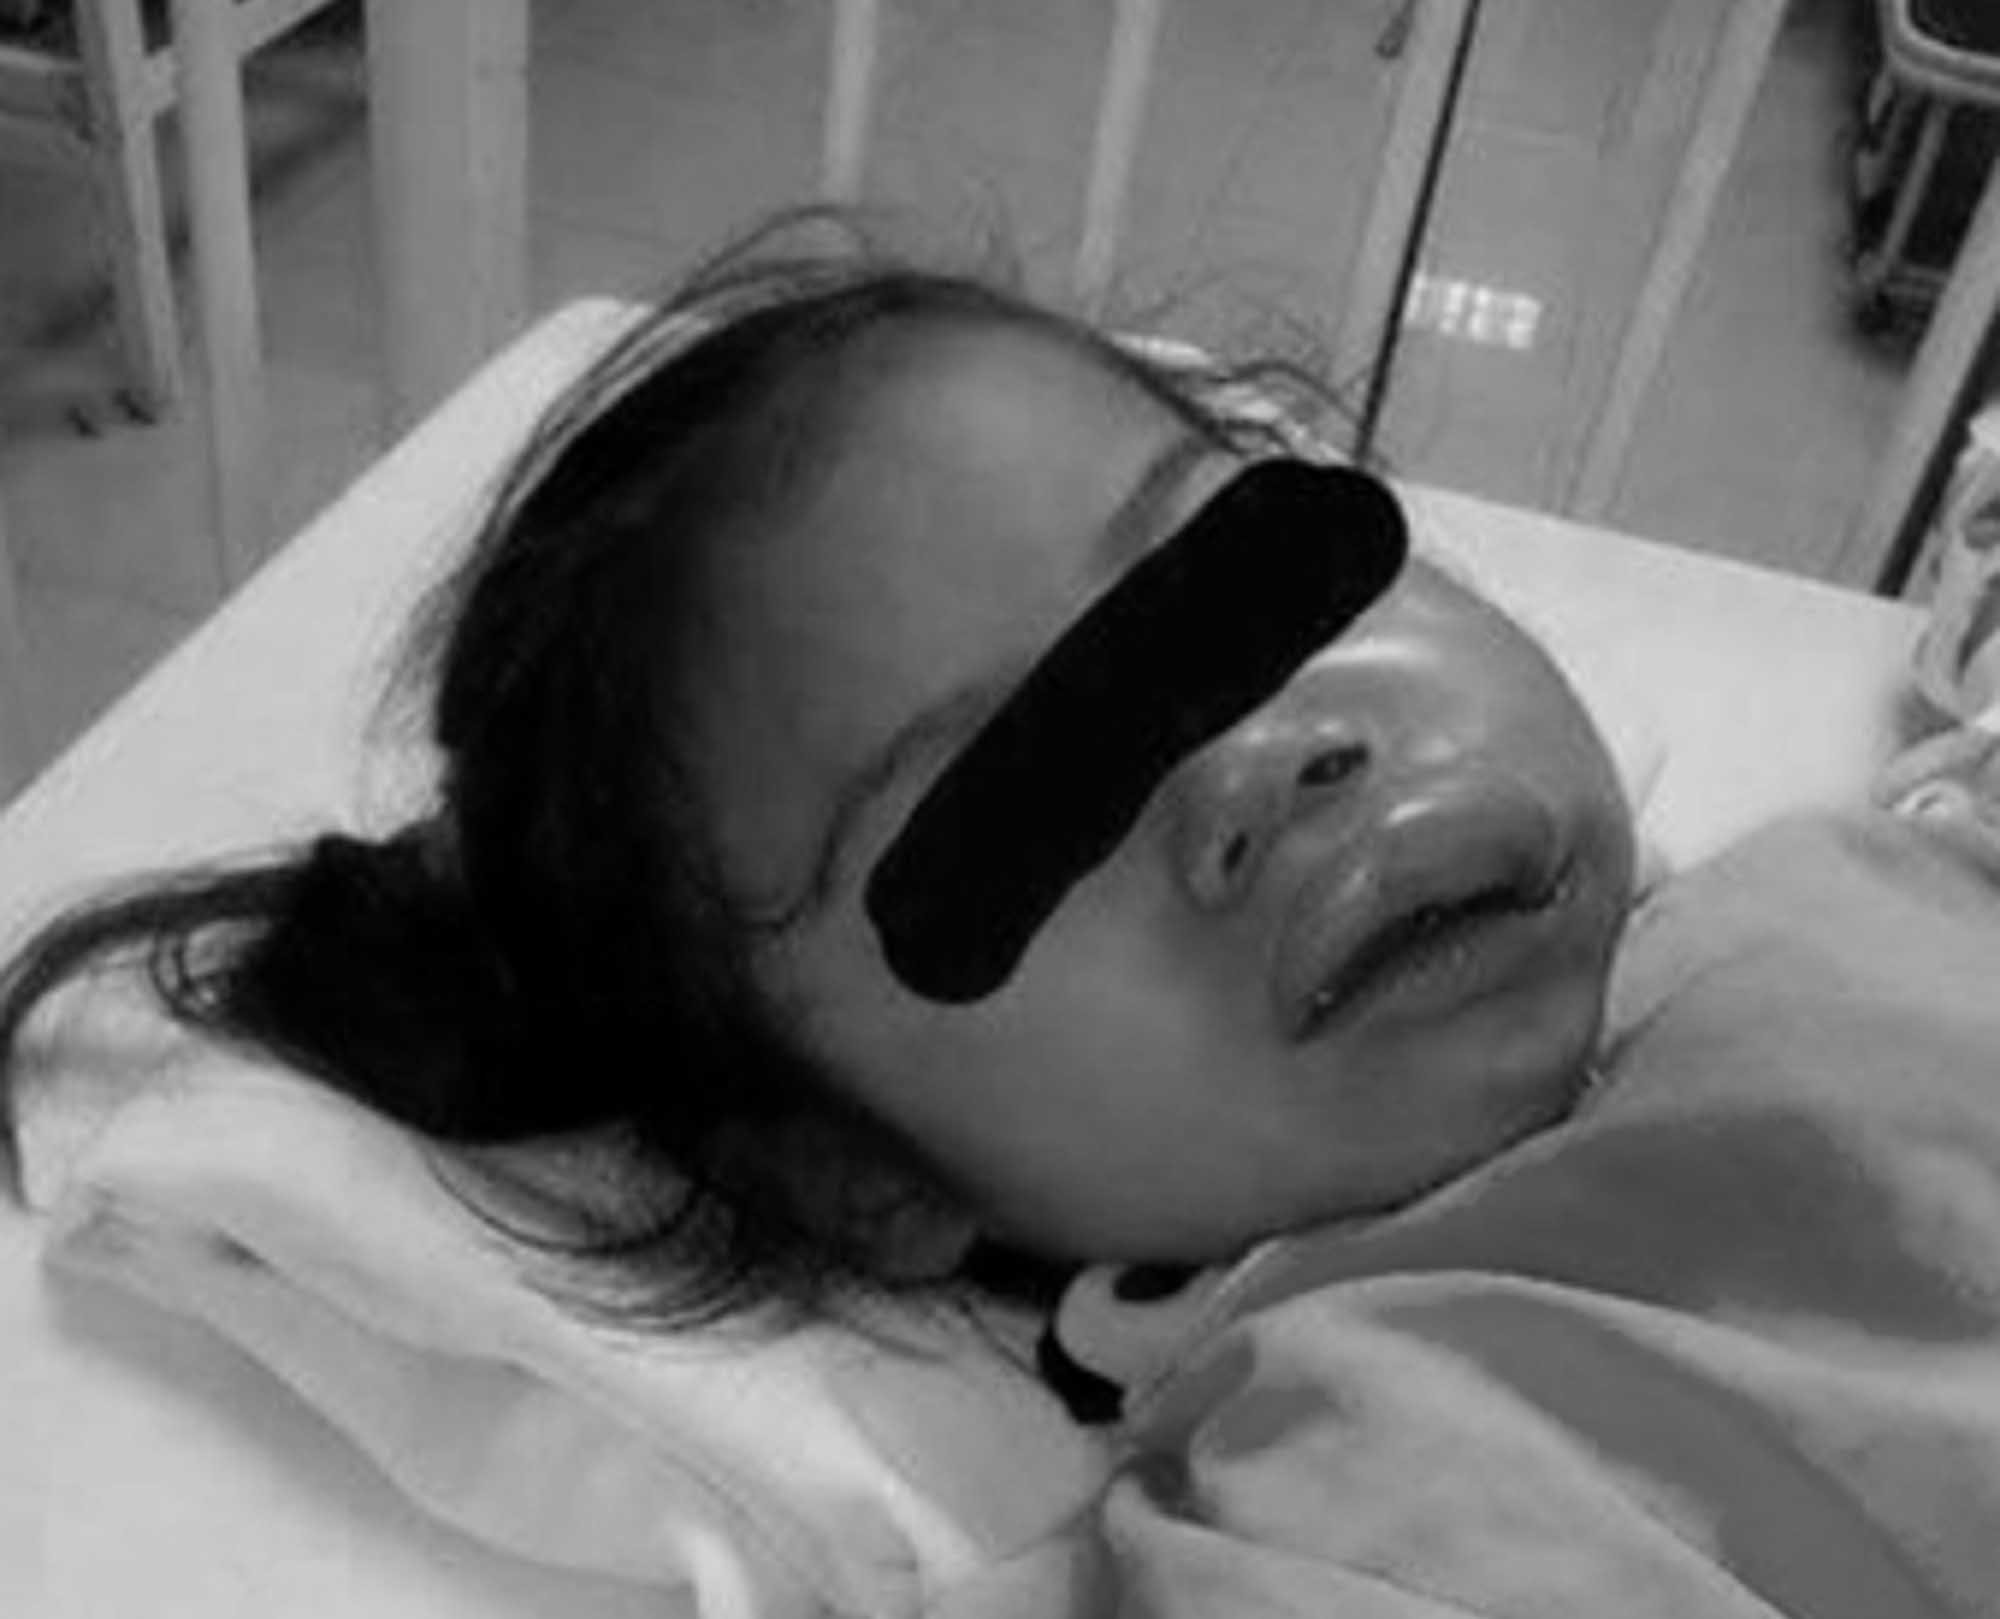 Mum Reports Nursery After Tots Face Disfigured In Class